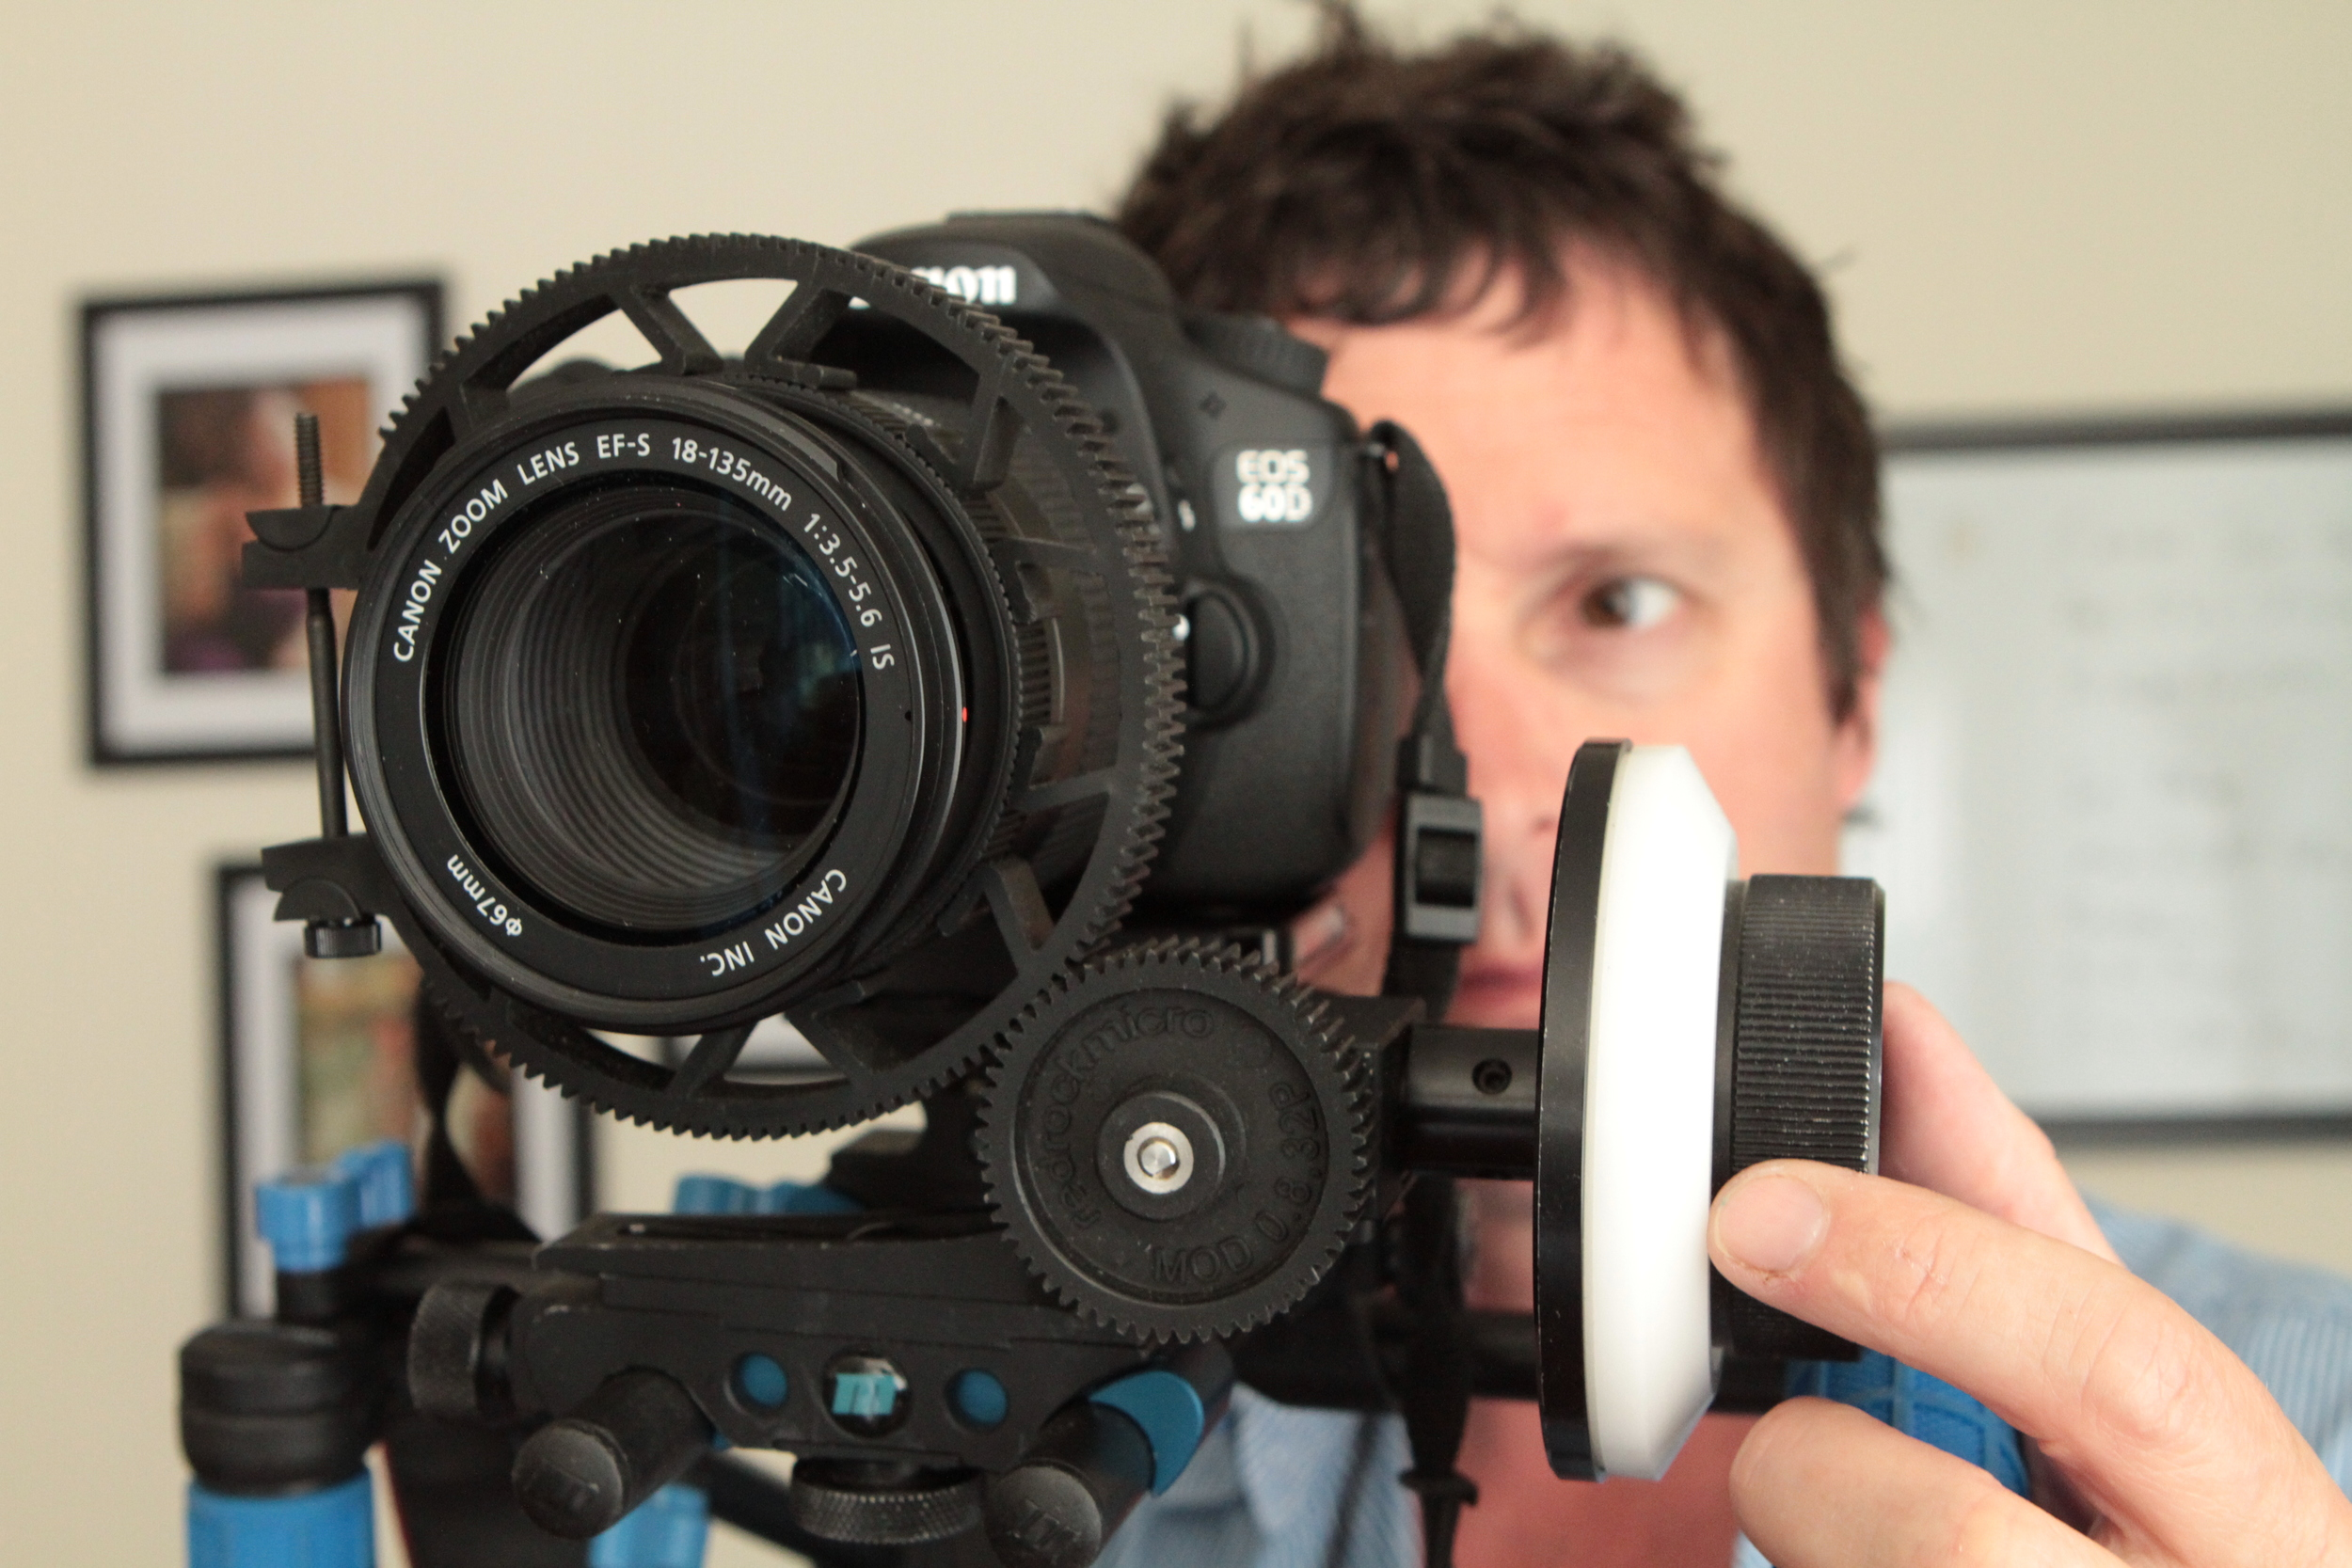 Zacuto mount on a RedRock handheld rig